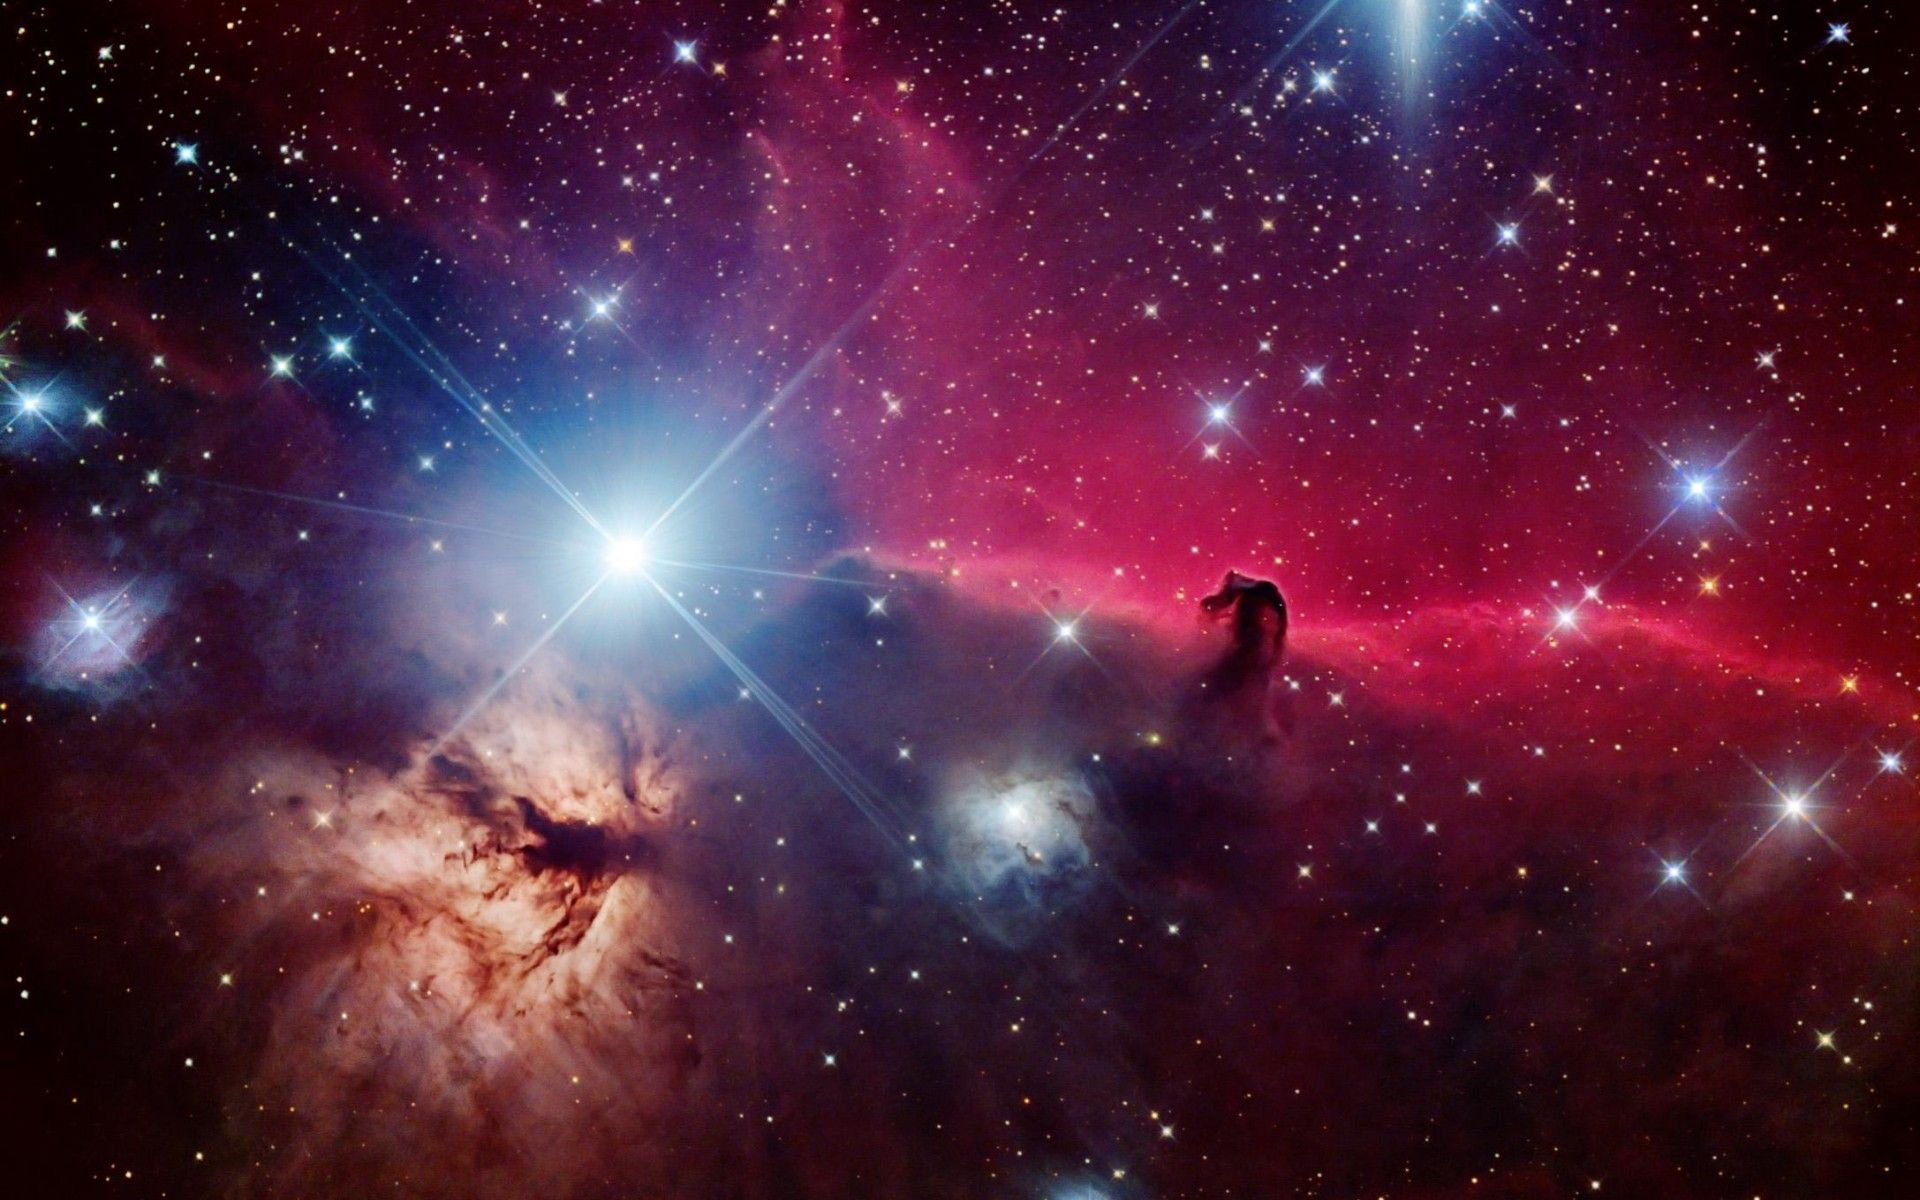 Download Wallpaper Horse Nebula - d7ba15fdc4df7bff824b20367f595592  Perfect Image Reference_7937.jpg